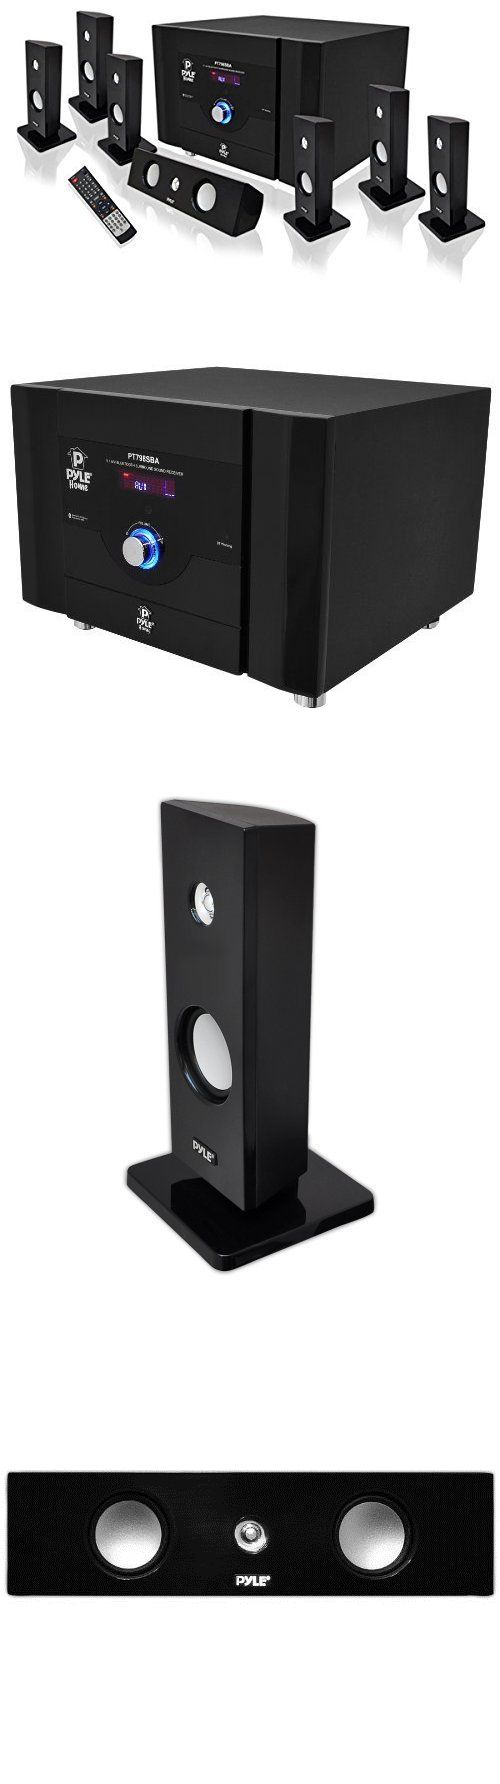 Home Theater Systems: New Pyle Bluetooth 7.1 Ch 500W Home Theater System Stereo Speaker Surround Sound BUY IT NOW ONLY: $216.73